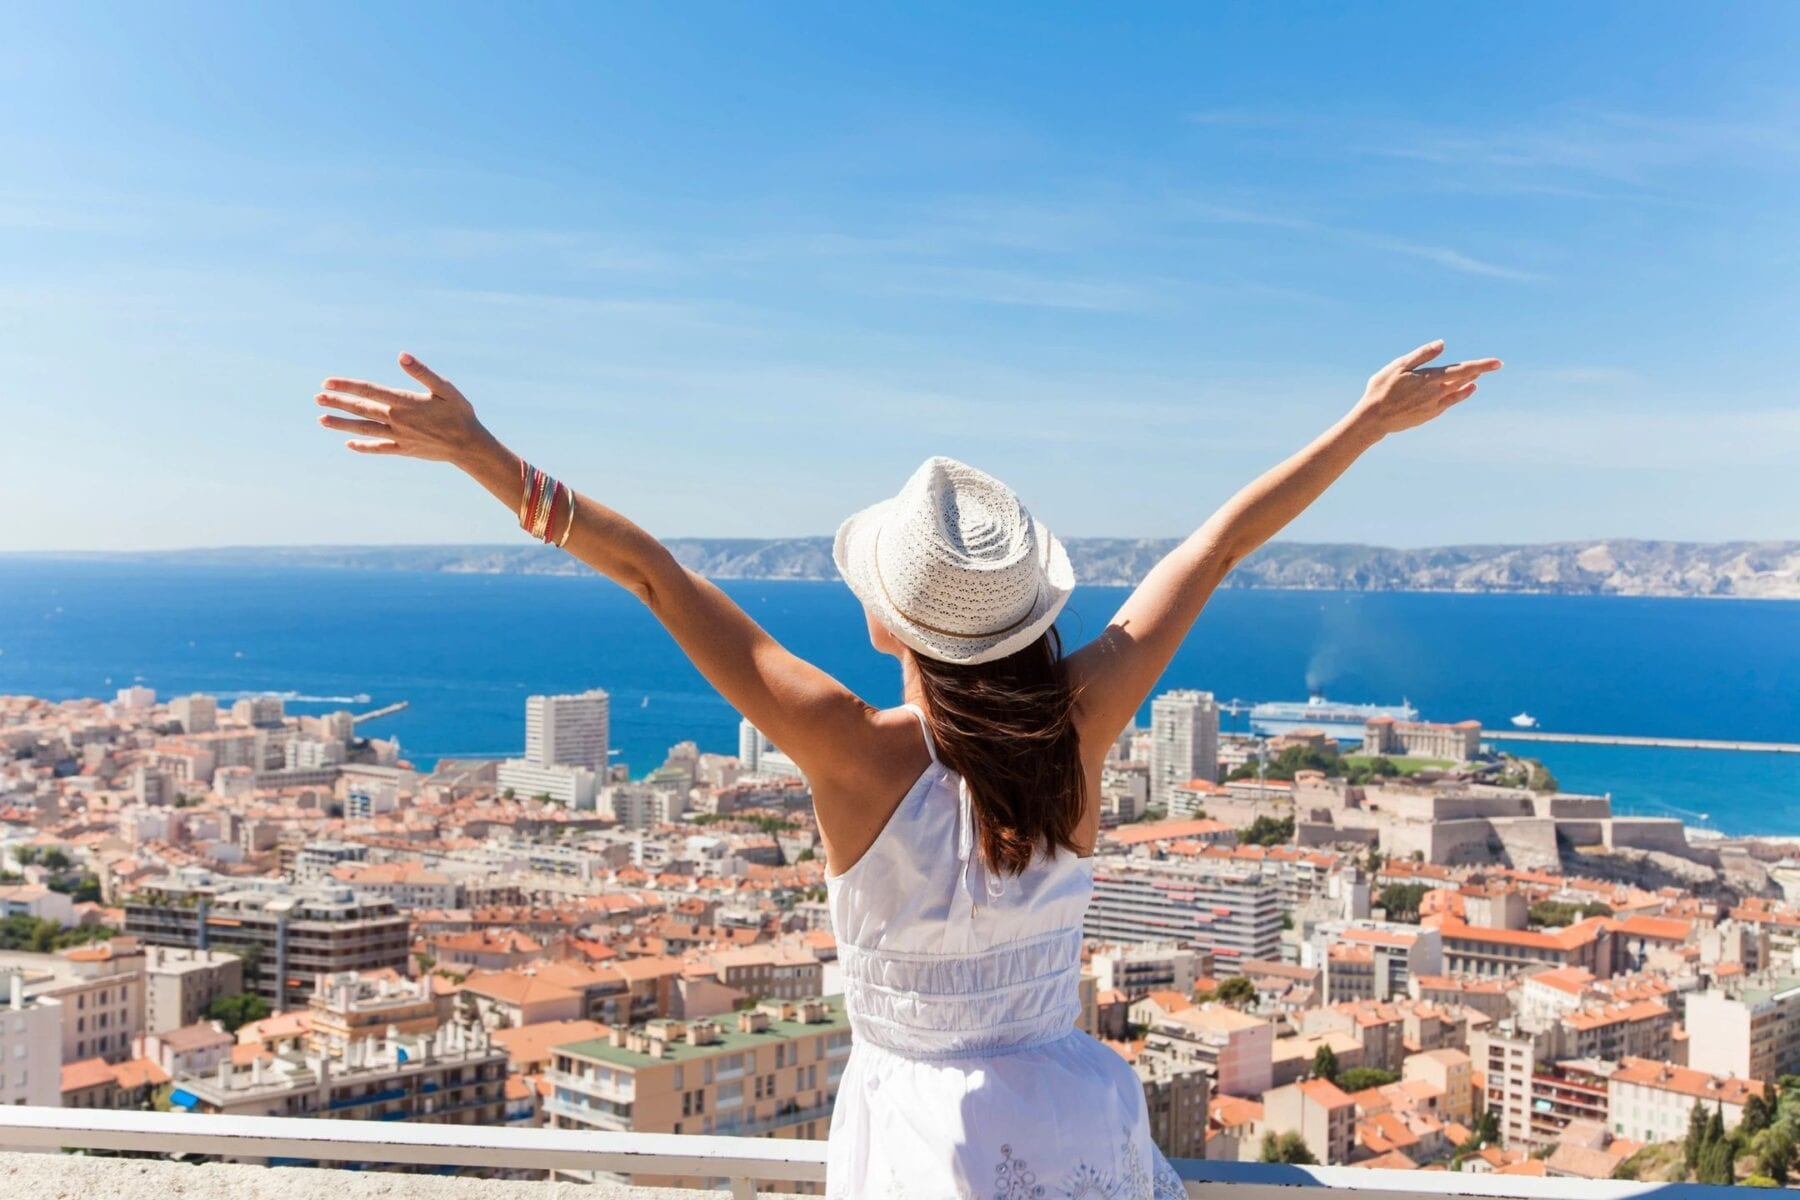 8 Top Medical Tourism Destinations, According to Medical Travelers